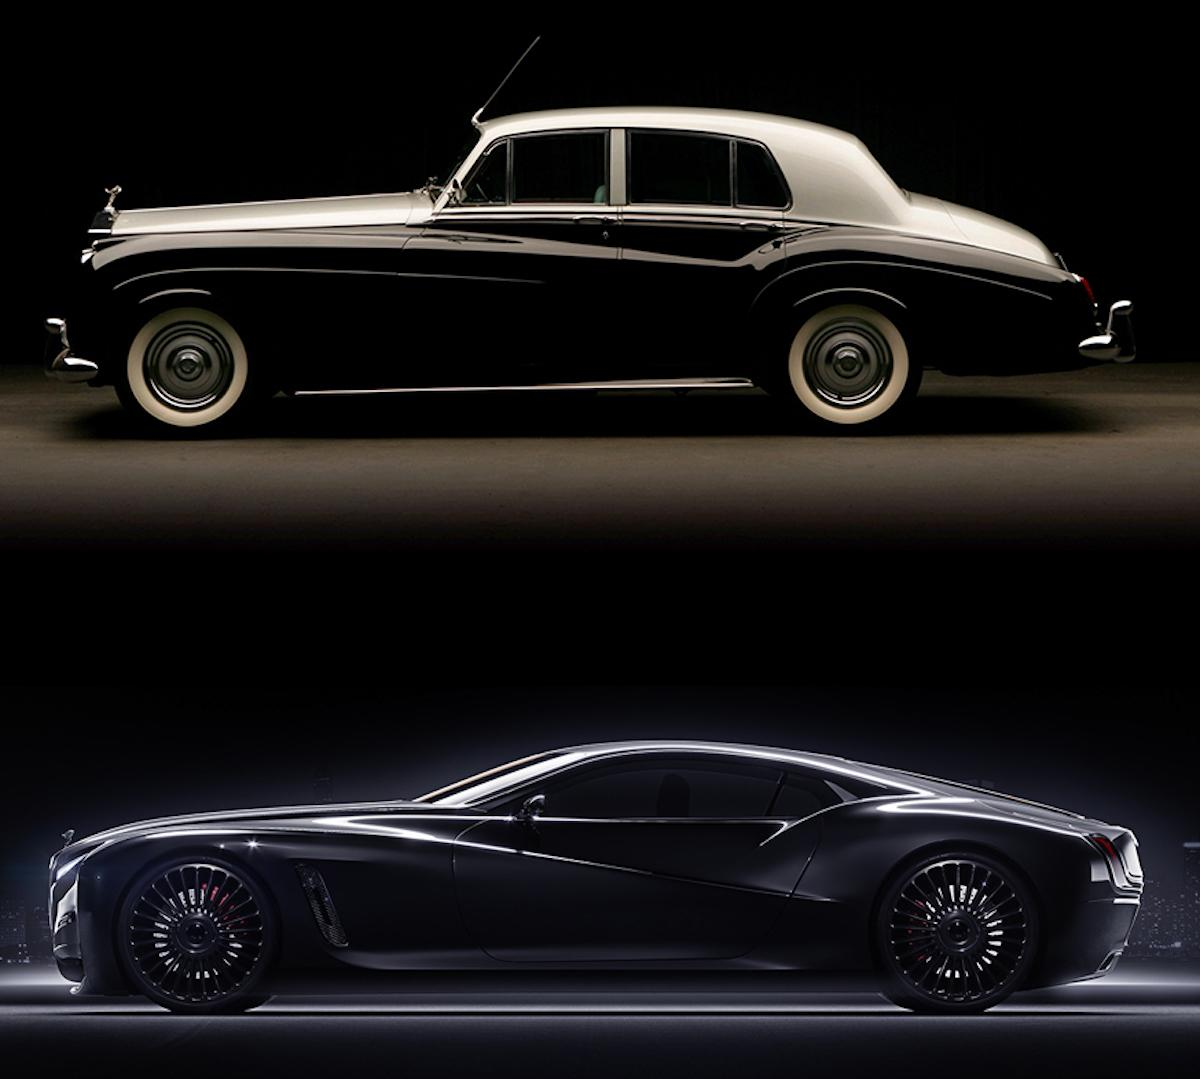 Rolls Roys coupe from classic look to cutting-edge modern way